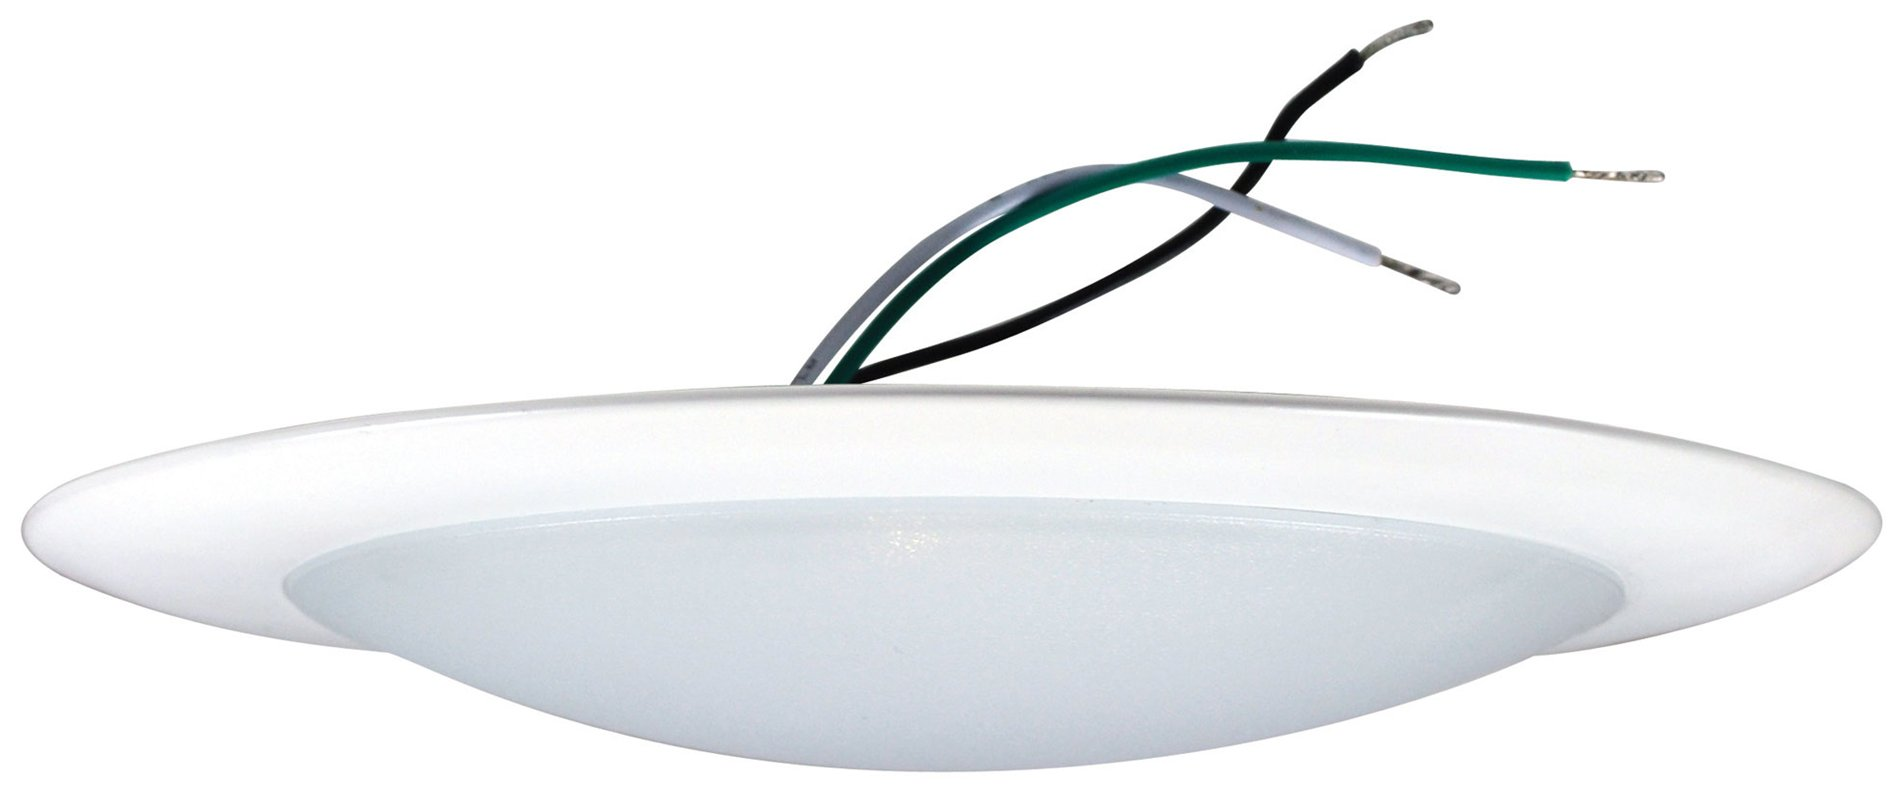 Nora Lighting Nlopac R650930aw 6 Quot Led Surface Mount Ac Opal Nlopac R650930aw